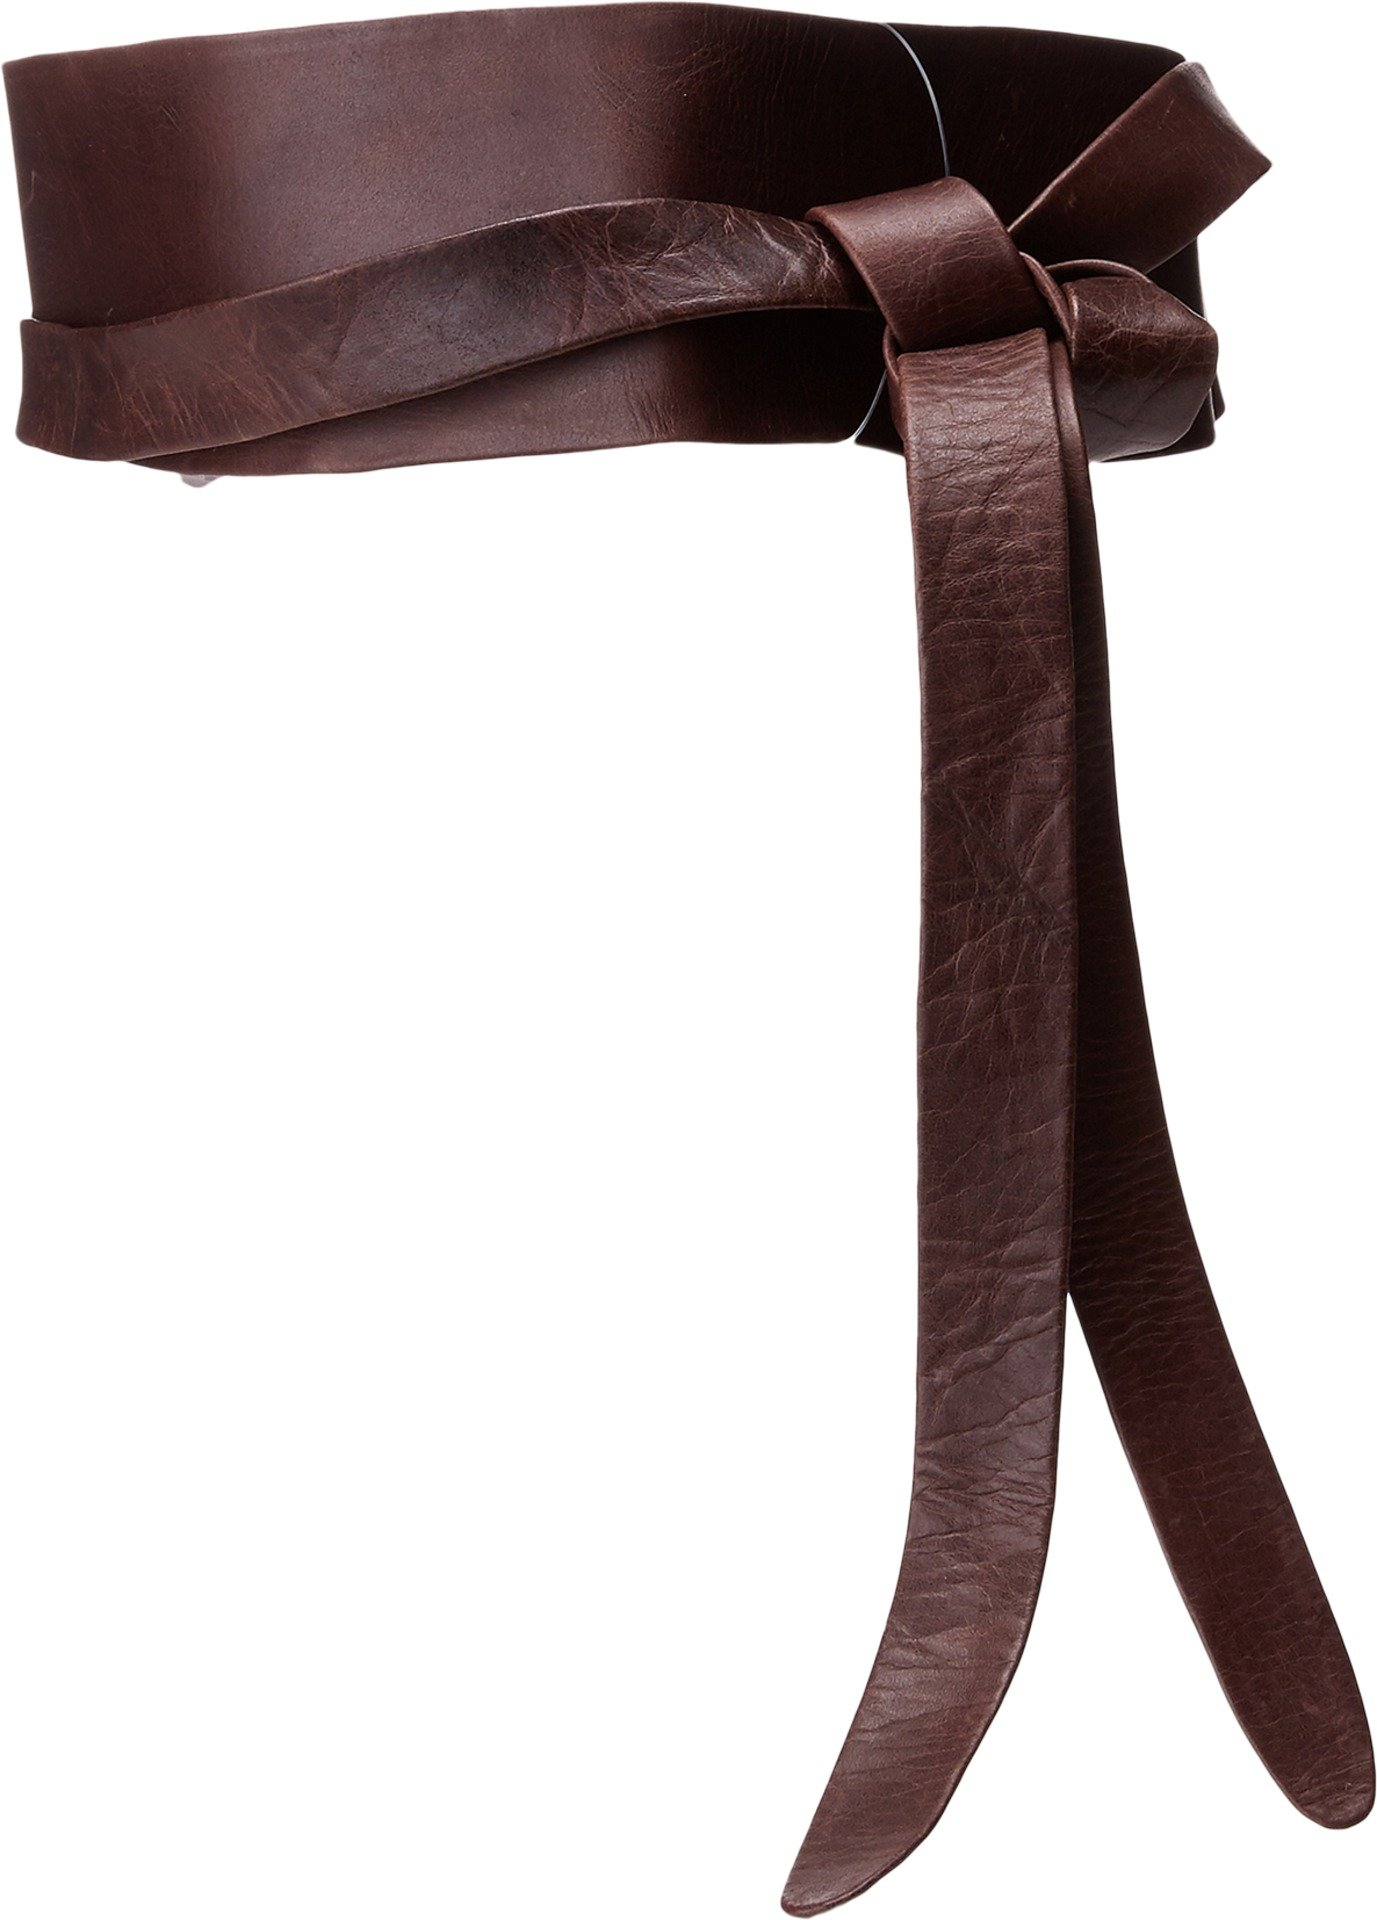 ADA Collection Women's Obi Classic Wrap Belt Chocolate One Size by ADA Collection